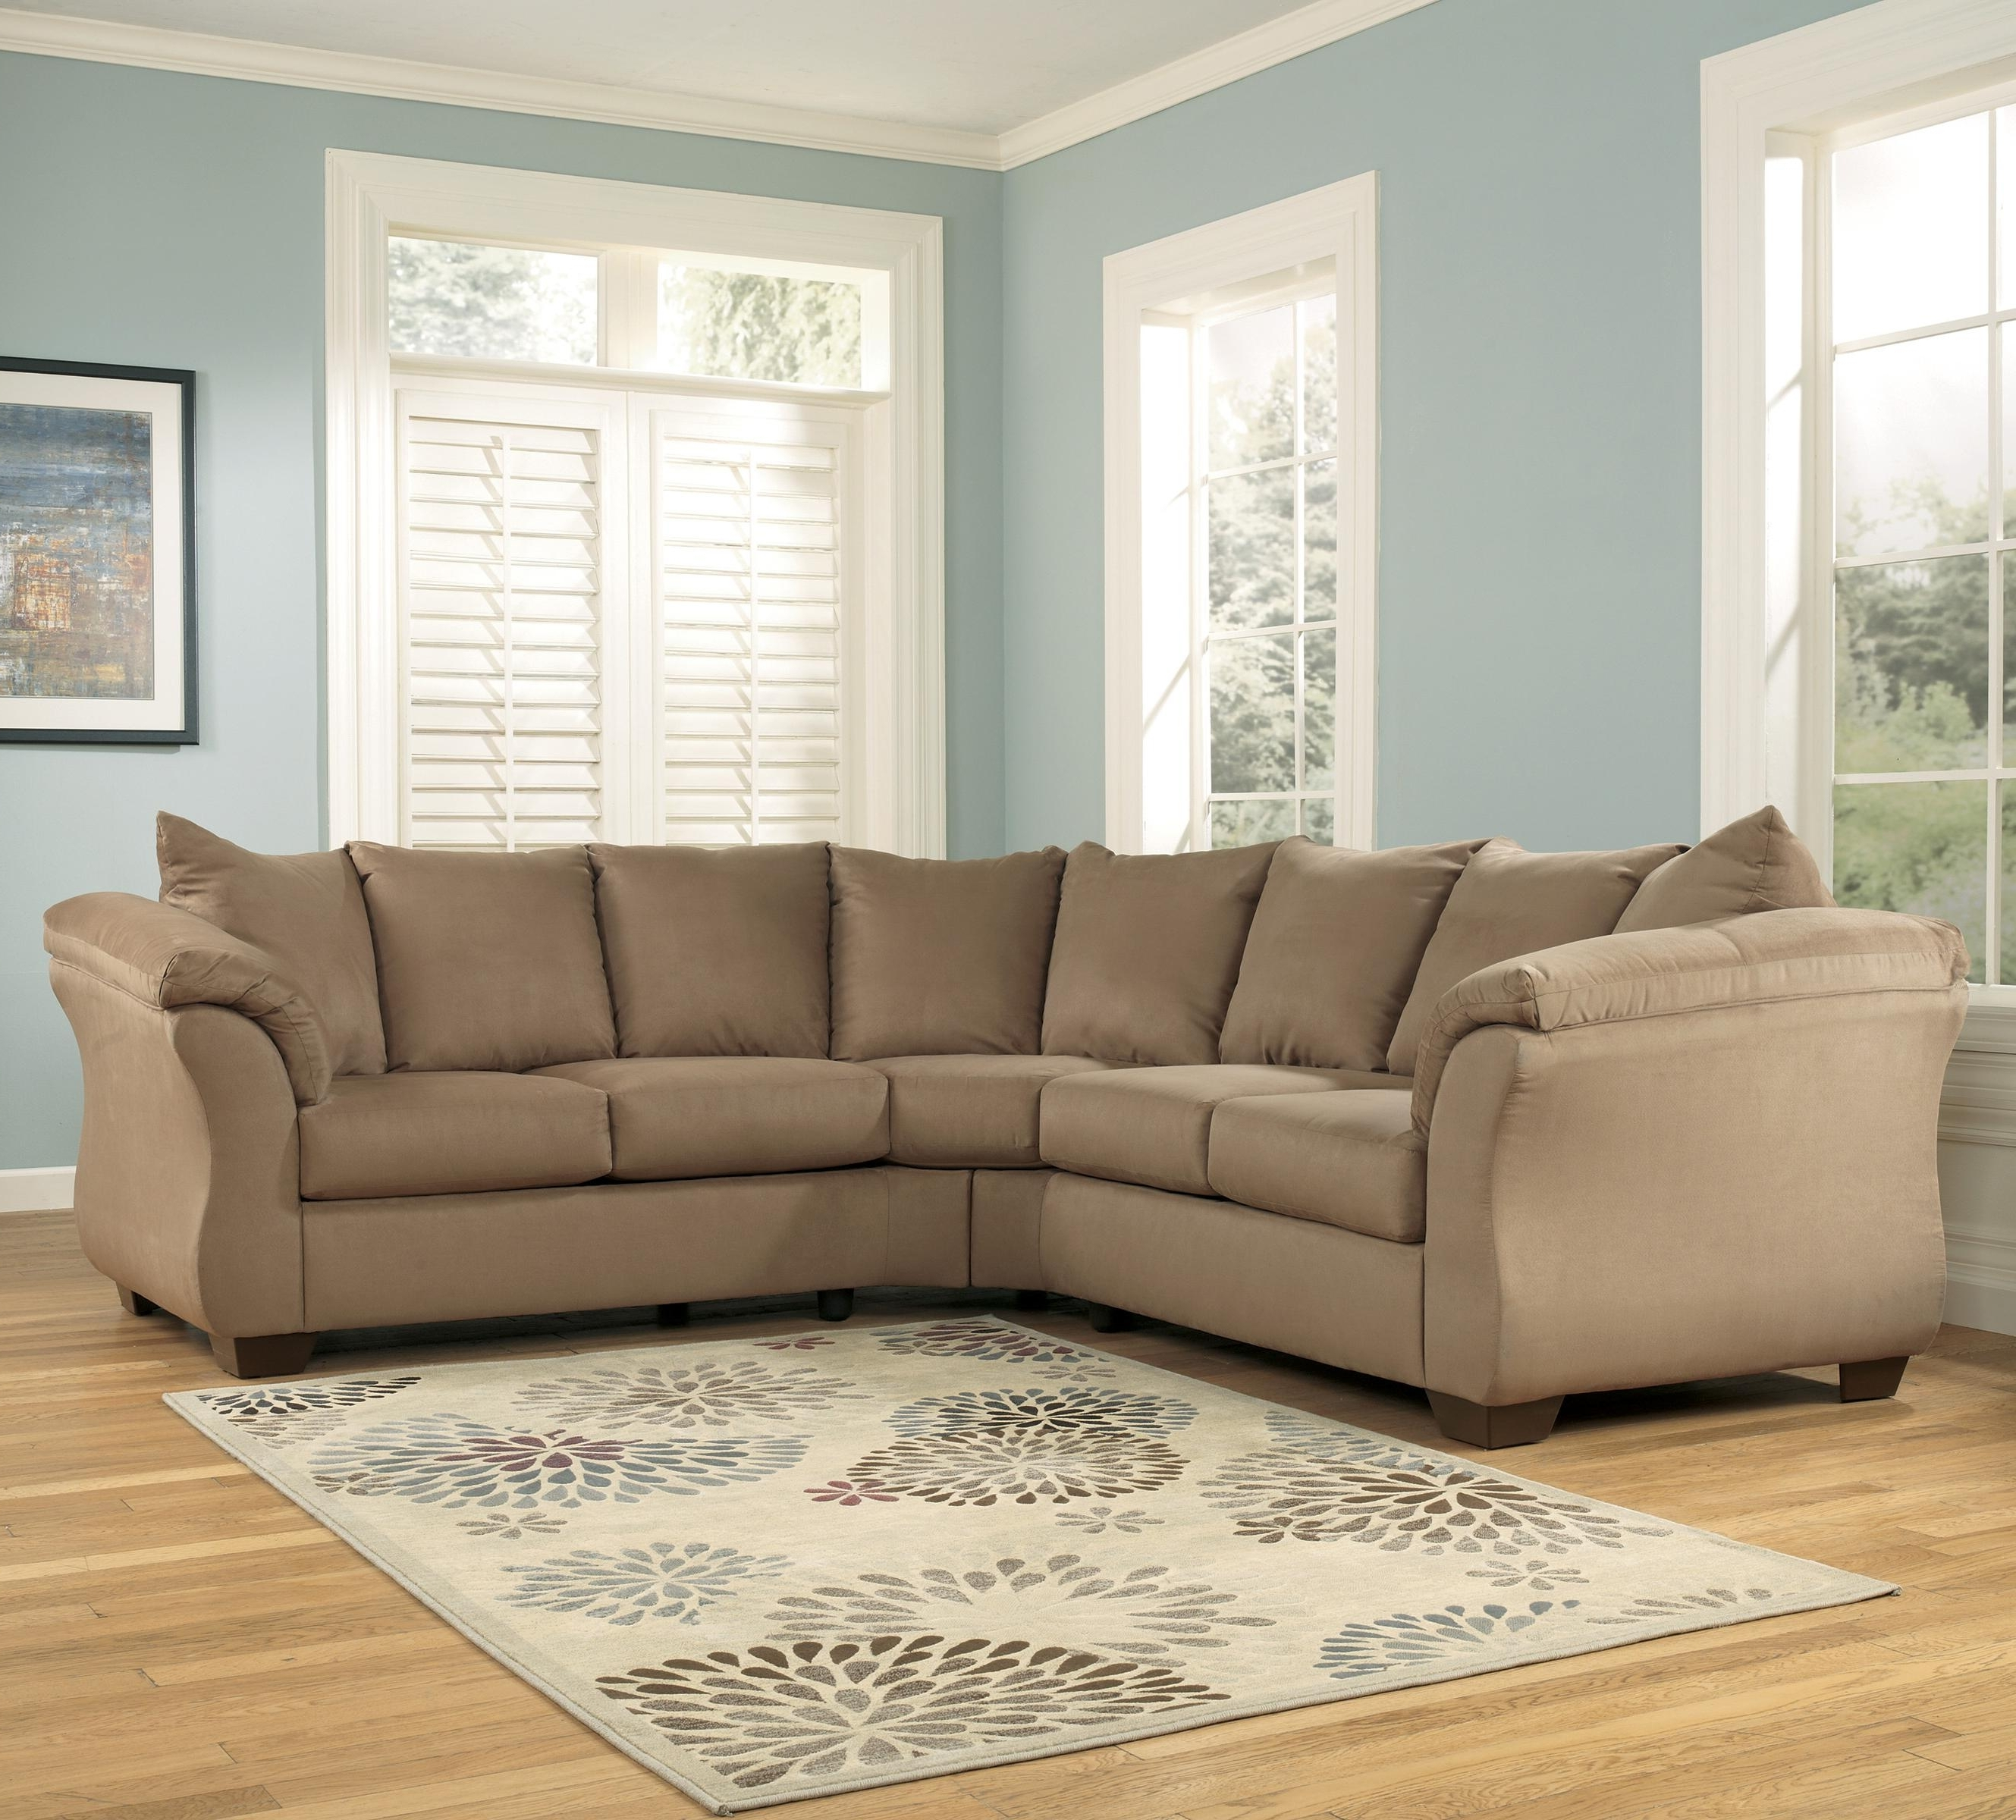 Well Liked Green Bay Wi Sectional Sofas Intended For Signature Designashley Darcy – Mocha Contemporary Sectional (View 15 of 15)